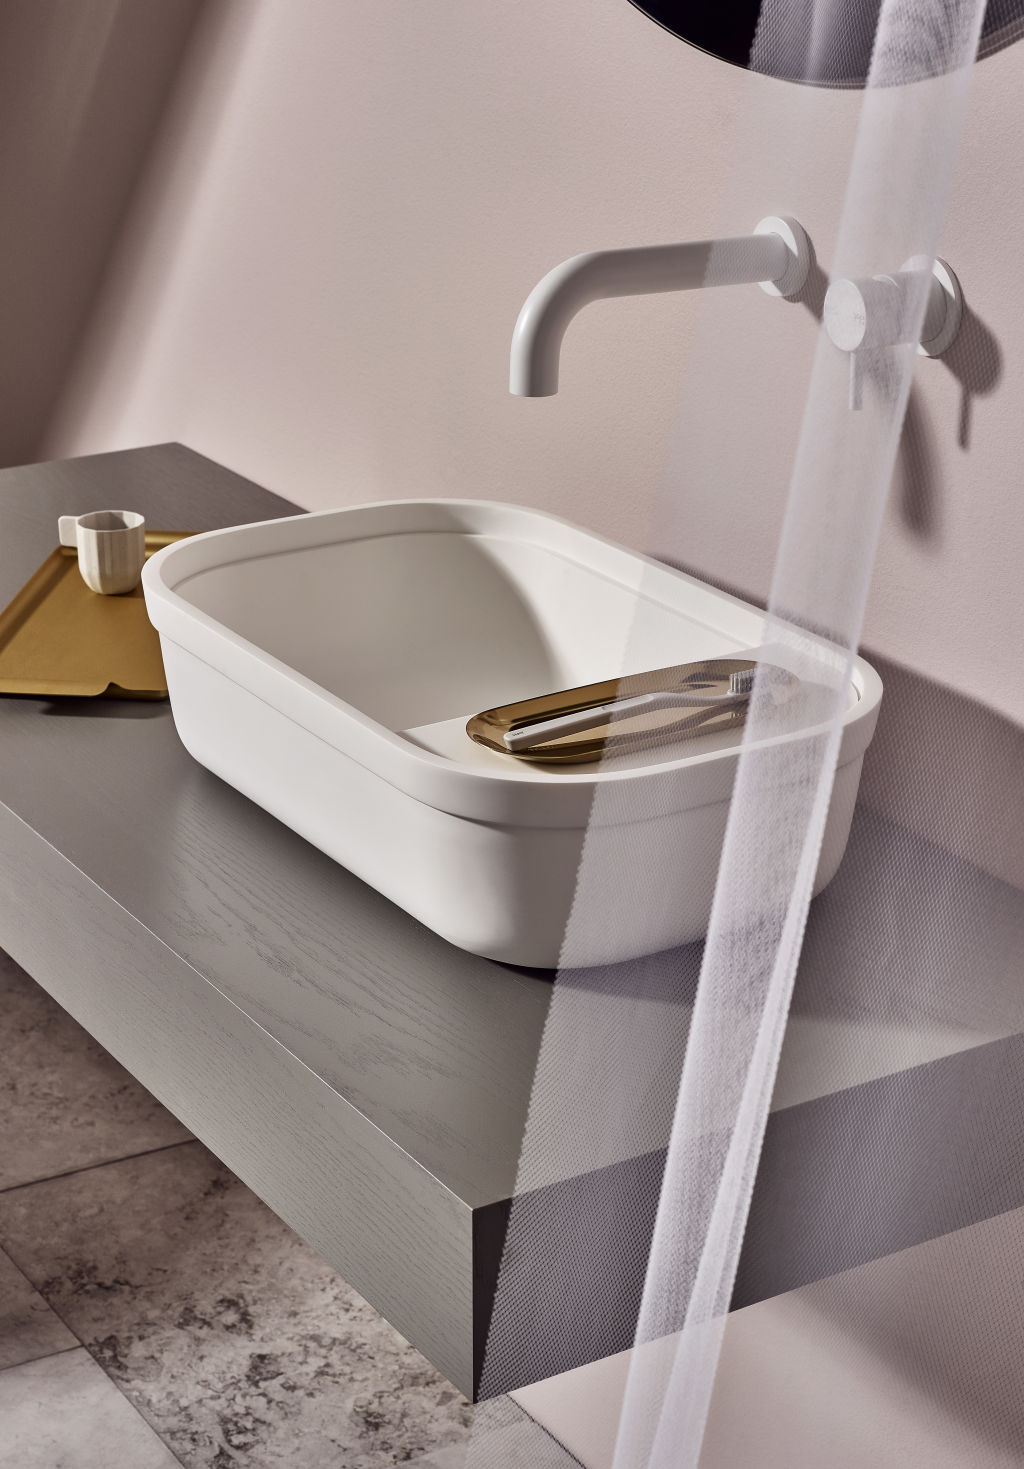 Orlo Basins by United Products NOT FOR REUSE